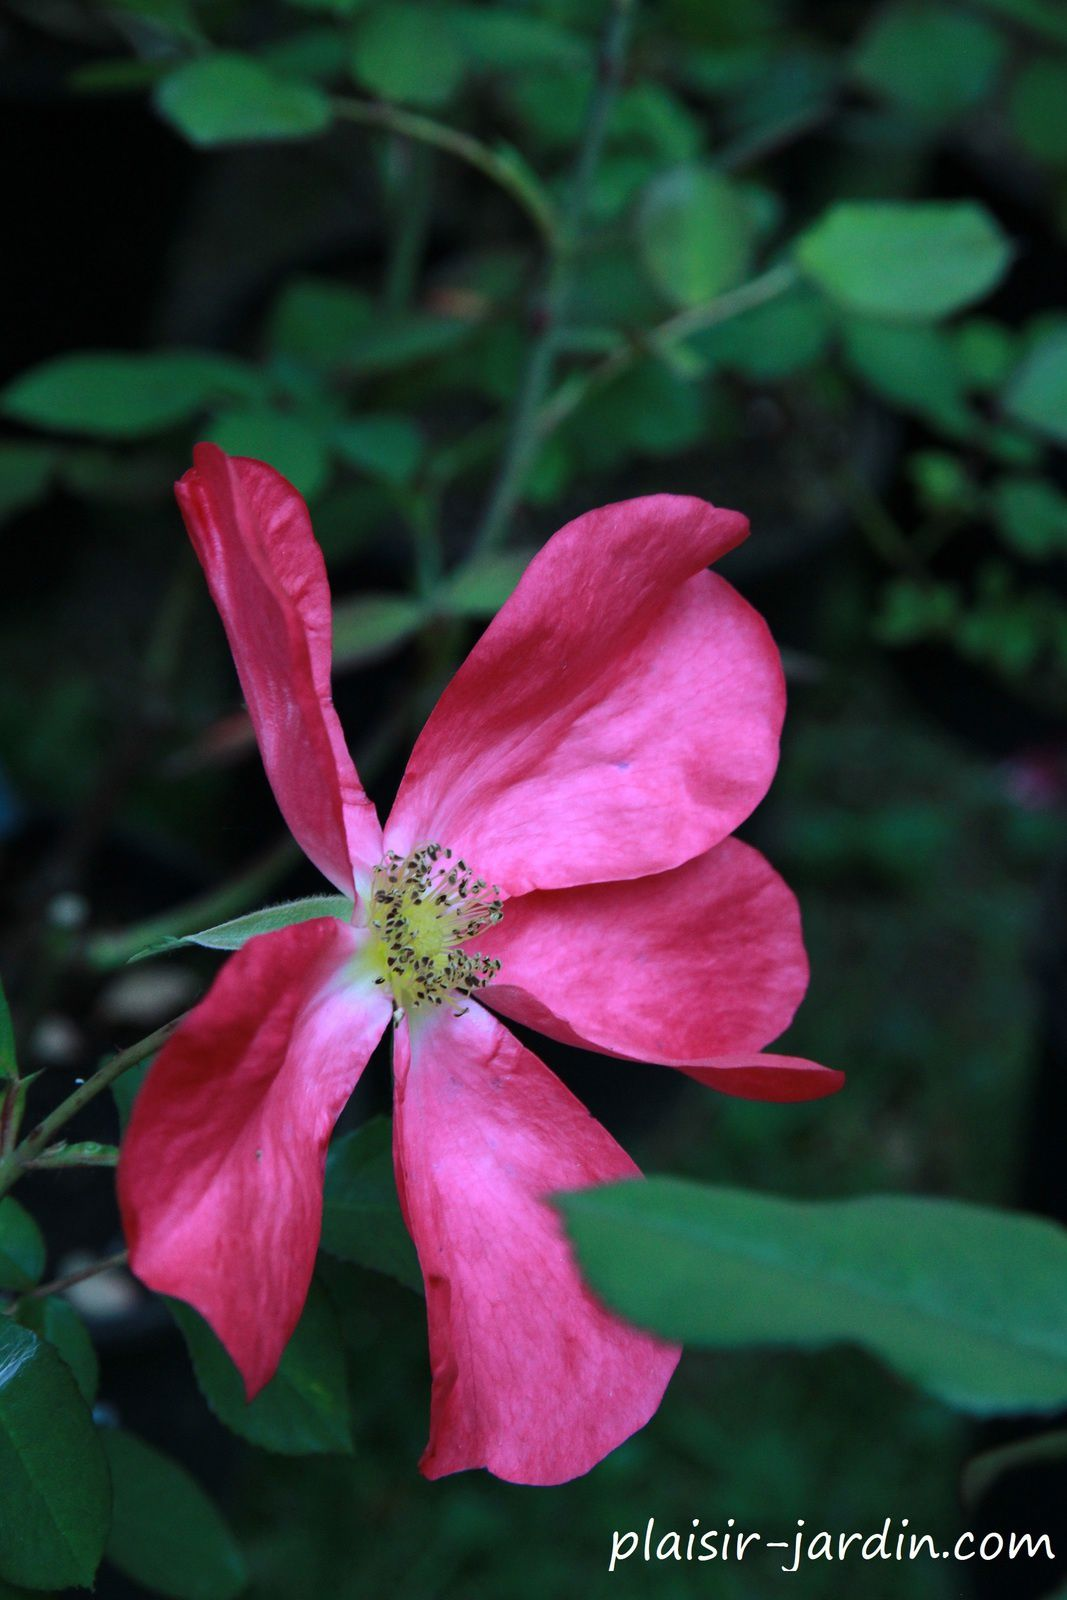 Le rosier 'Rose of Picardy'